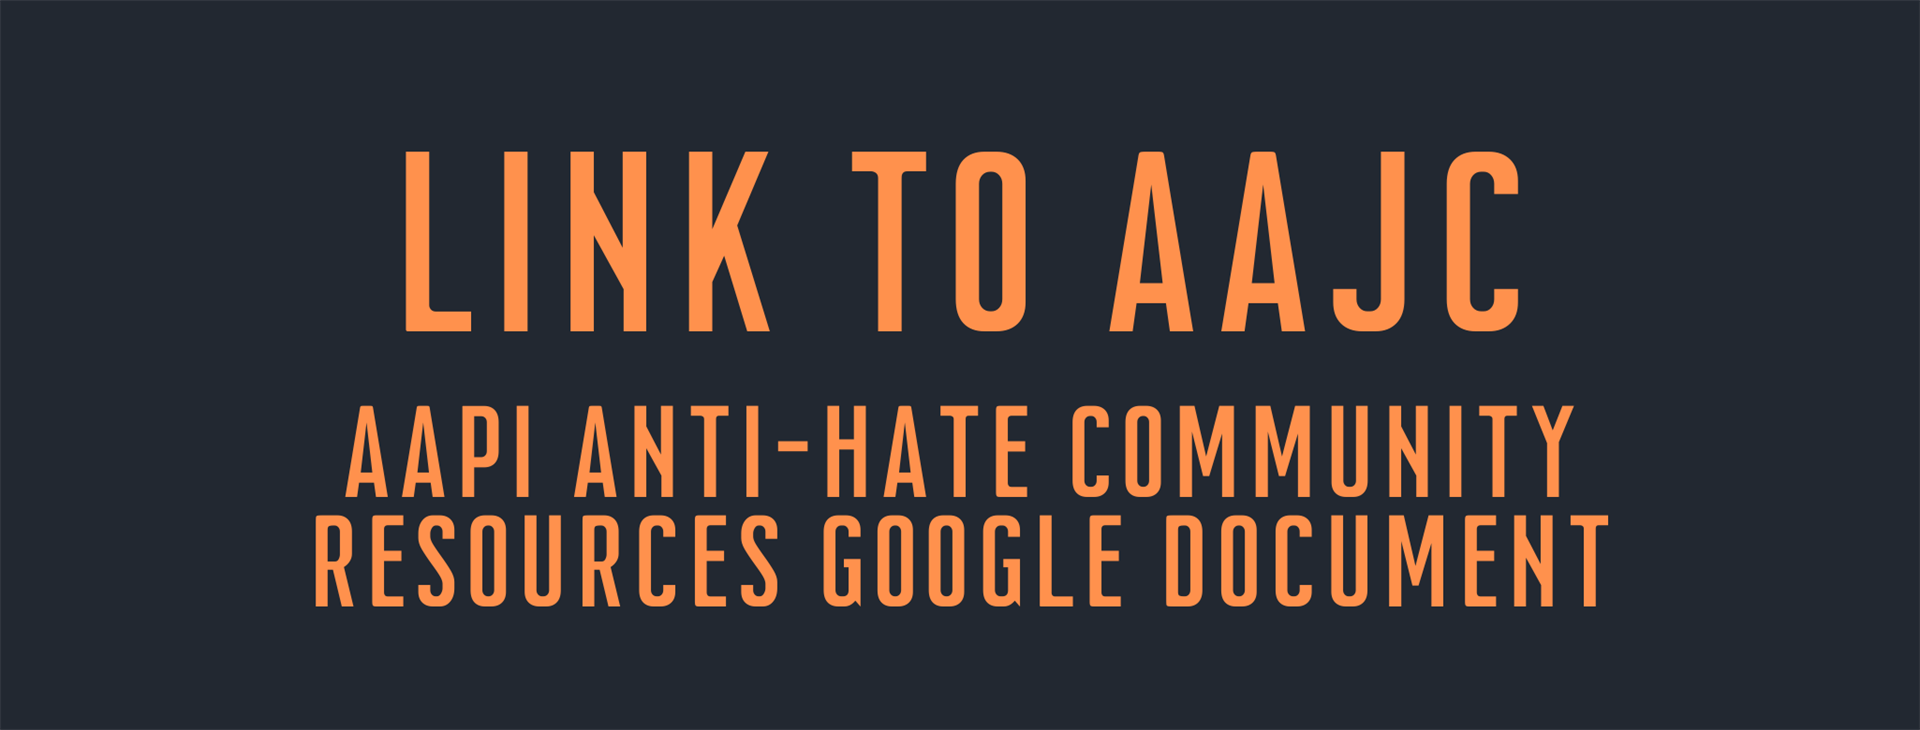 Link to AAJC AAPI Anti-Hate Community Resources Google Document